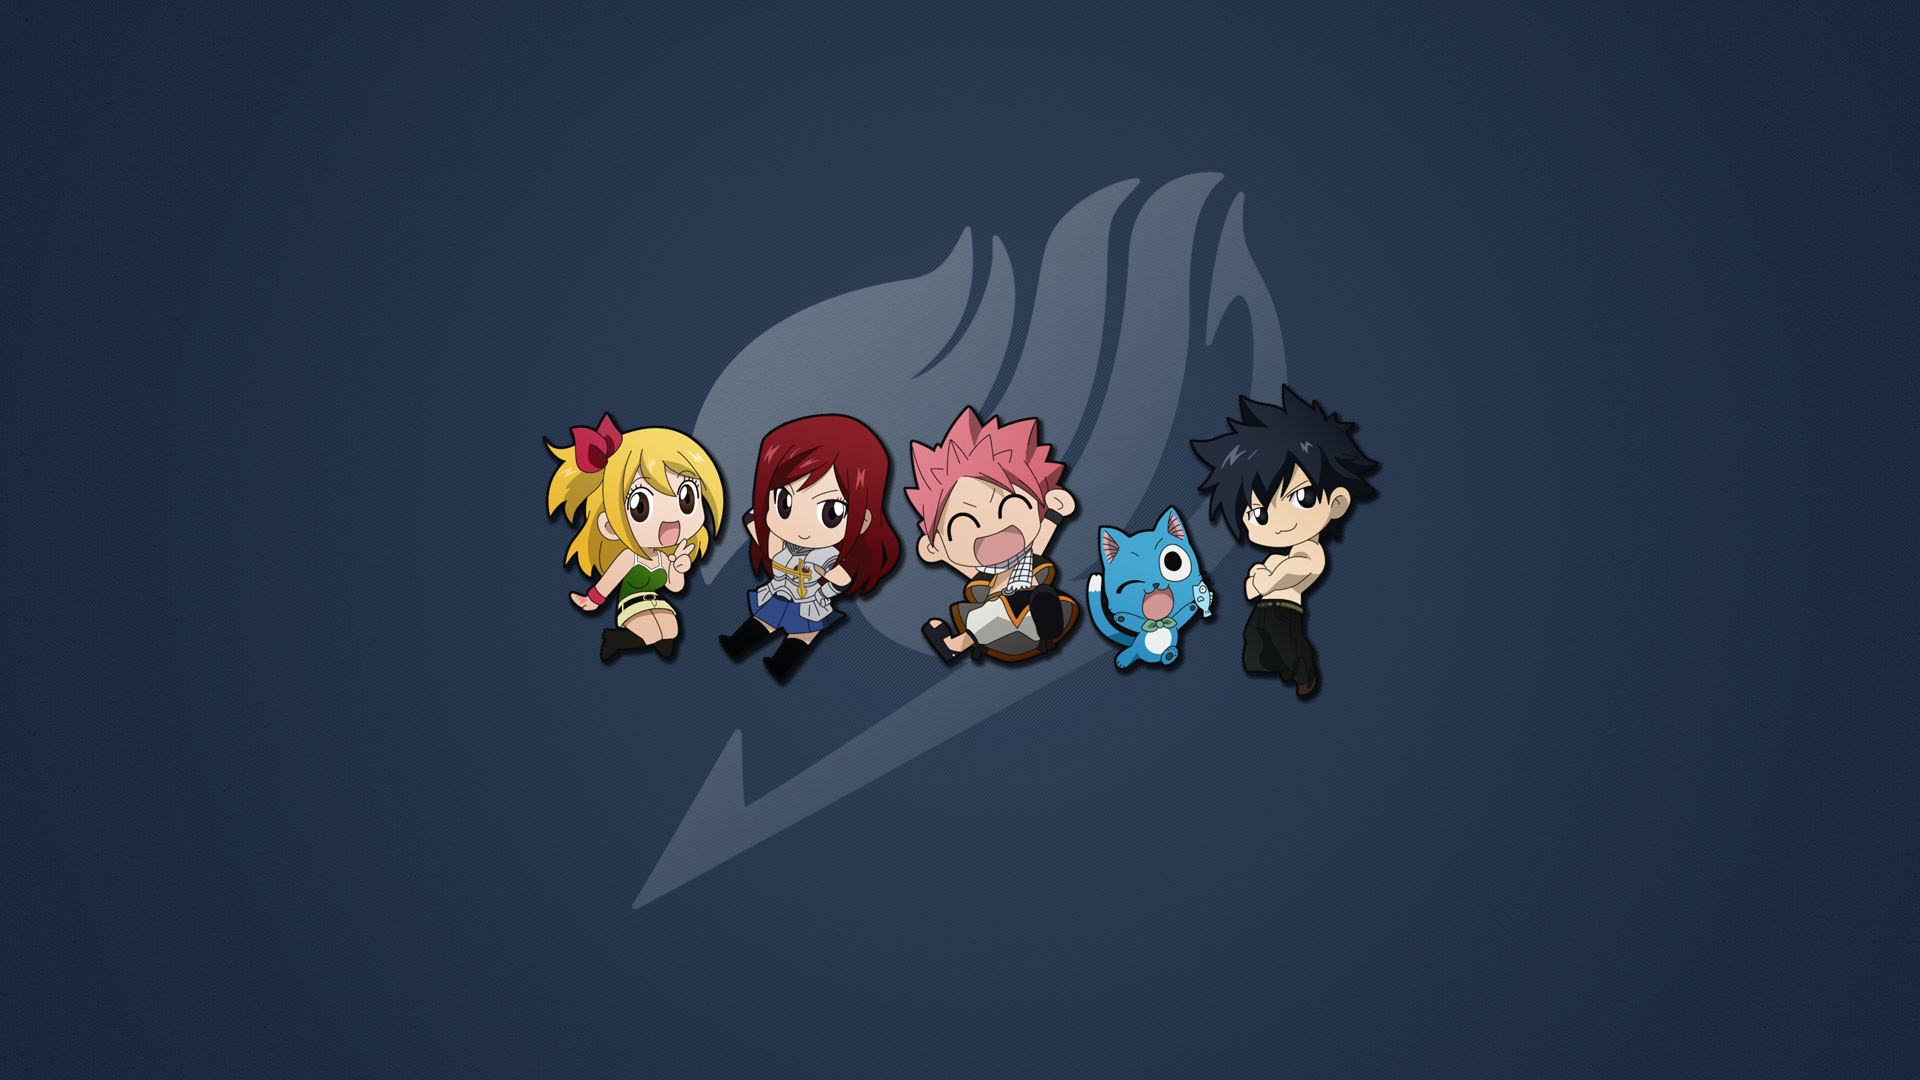 FAIRY TAIL, Wallpaper - Zerochan Anime Image Board